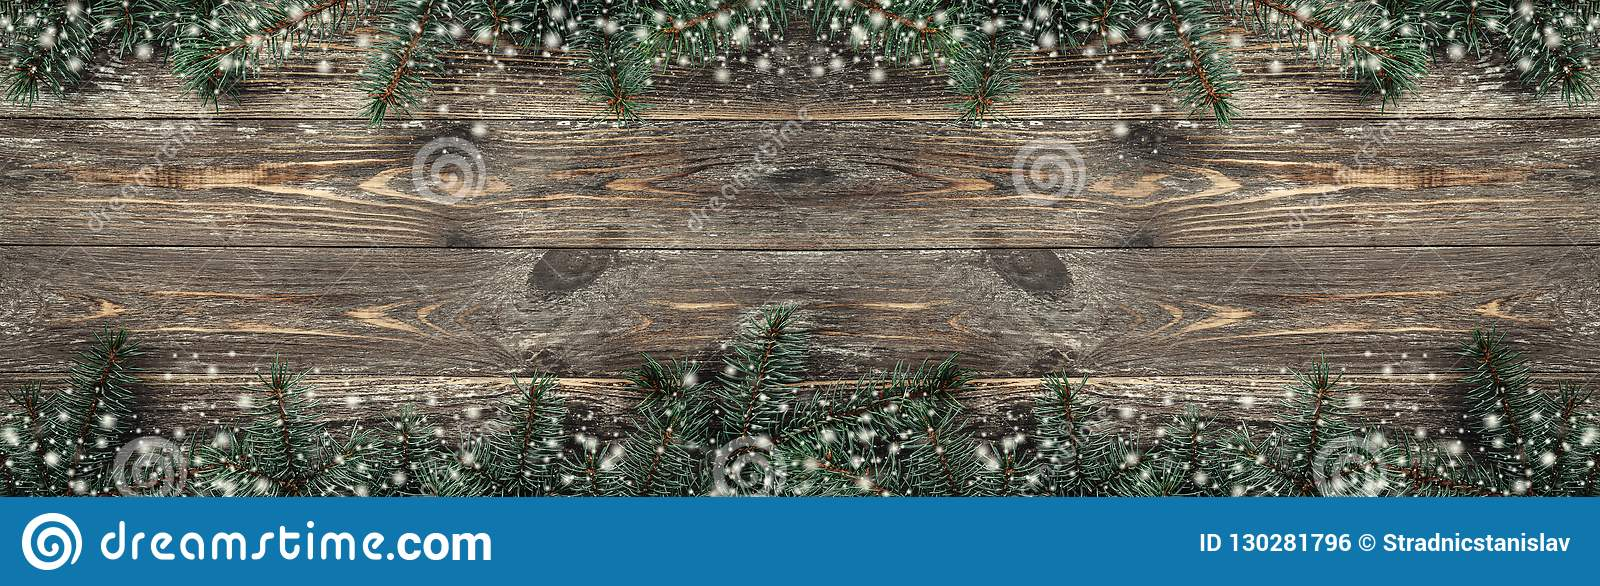 Old wood background with fir branches. Space for a greeting message. Christmas card. Top view. Effect snowflakes